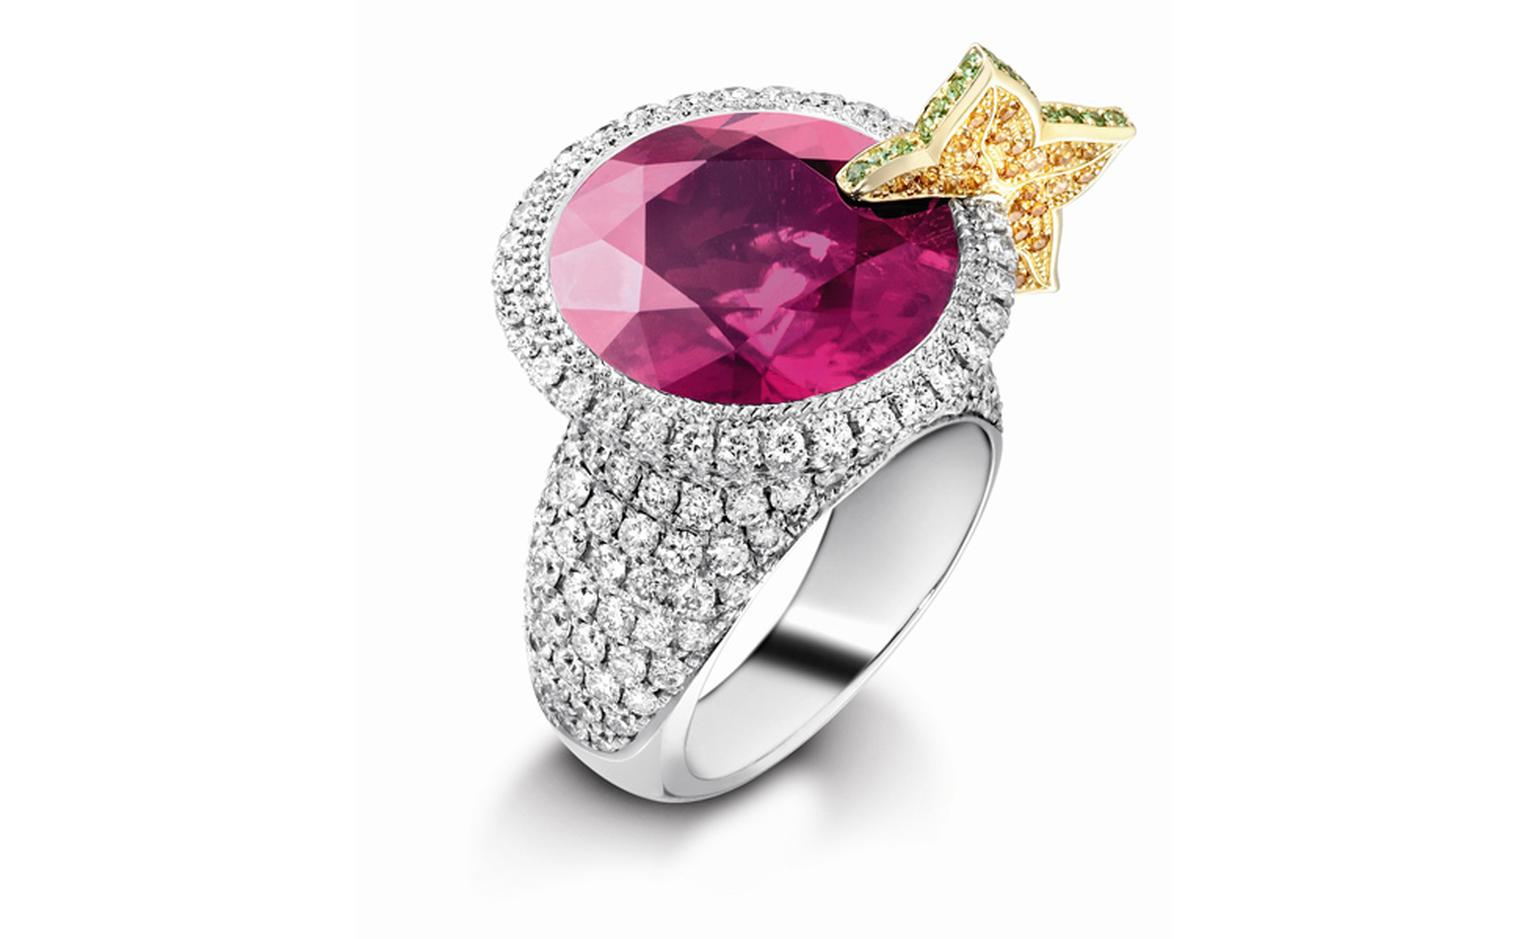 PIAGET, Limelight Cocktail inspiration, Cosmopolitan Ring in white gold with diamonds, pink rubellite and citrine. POA